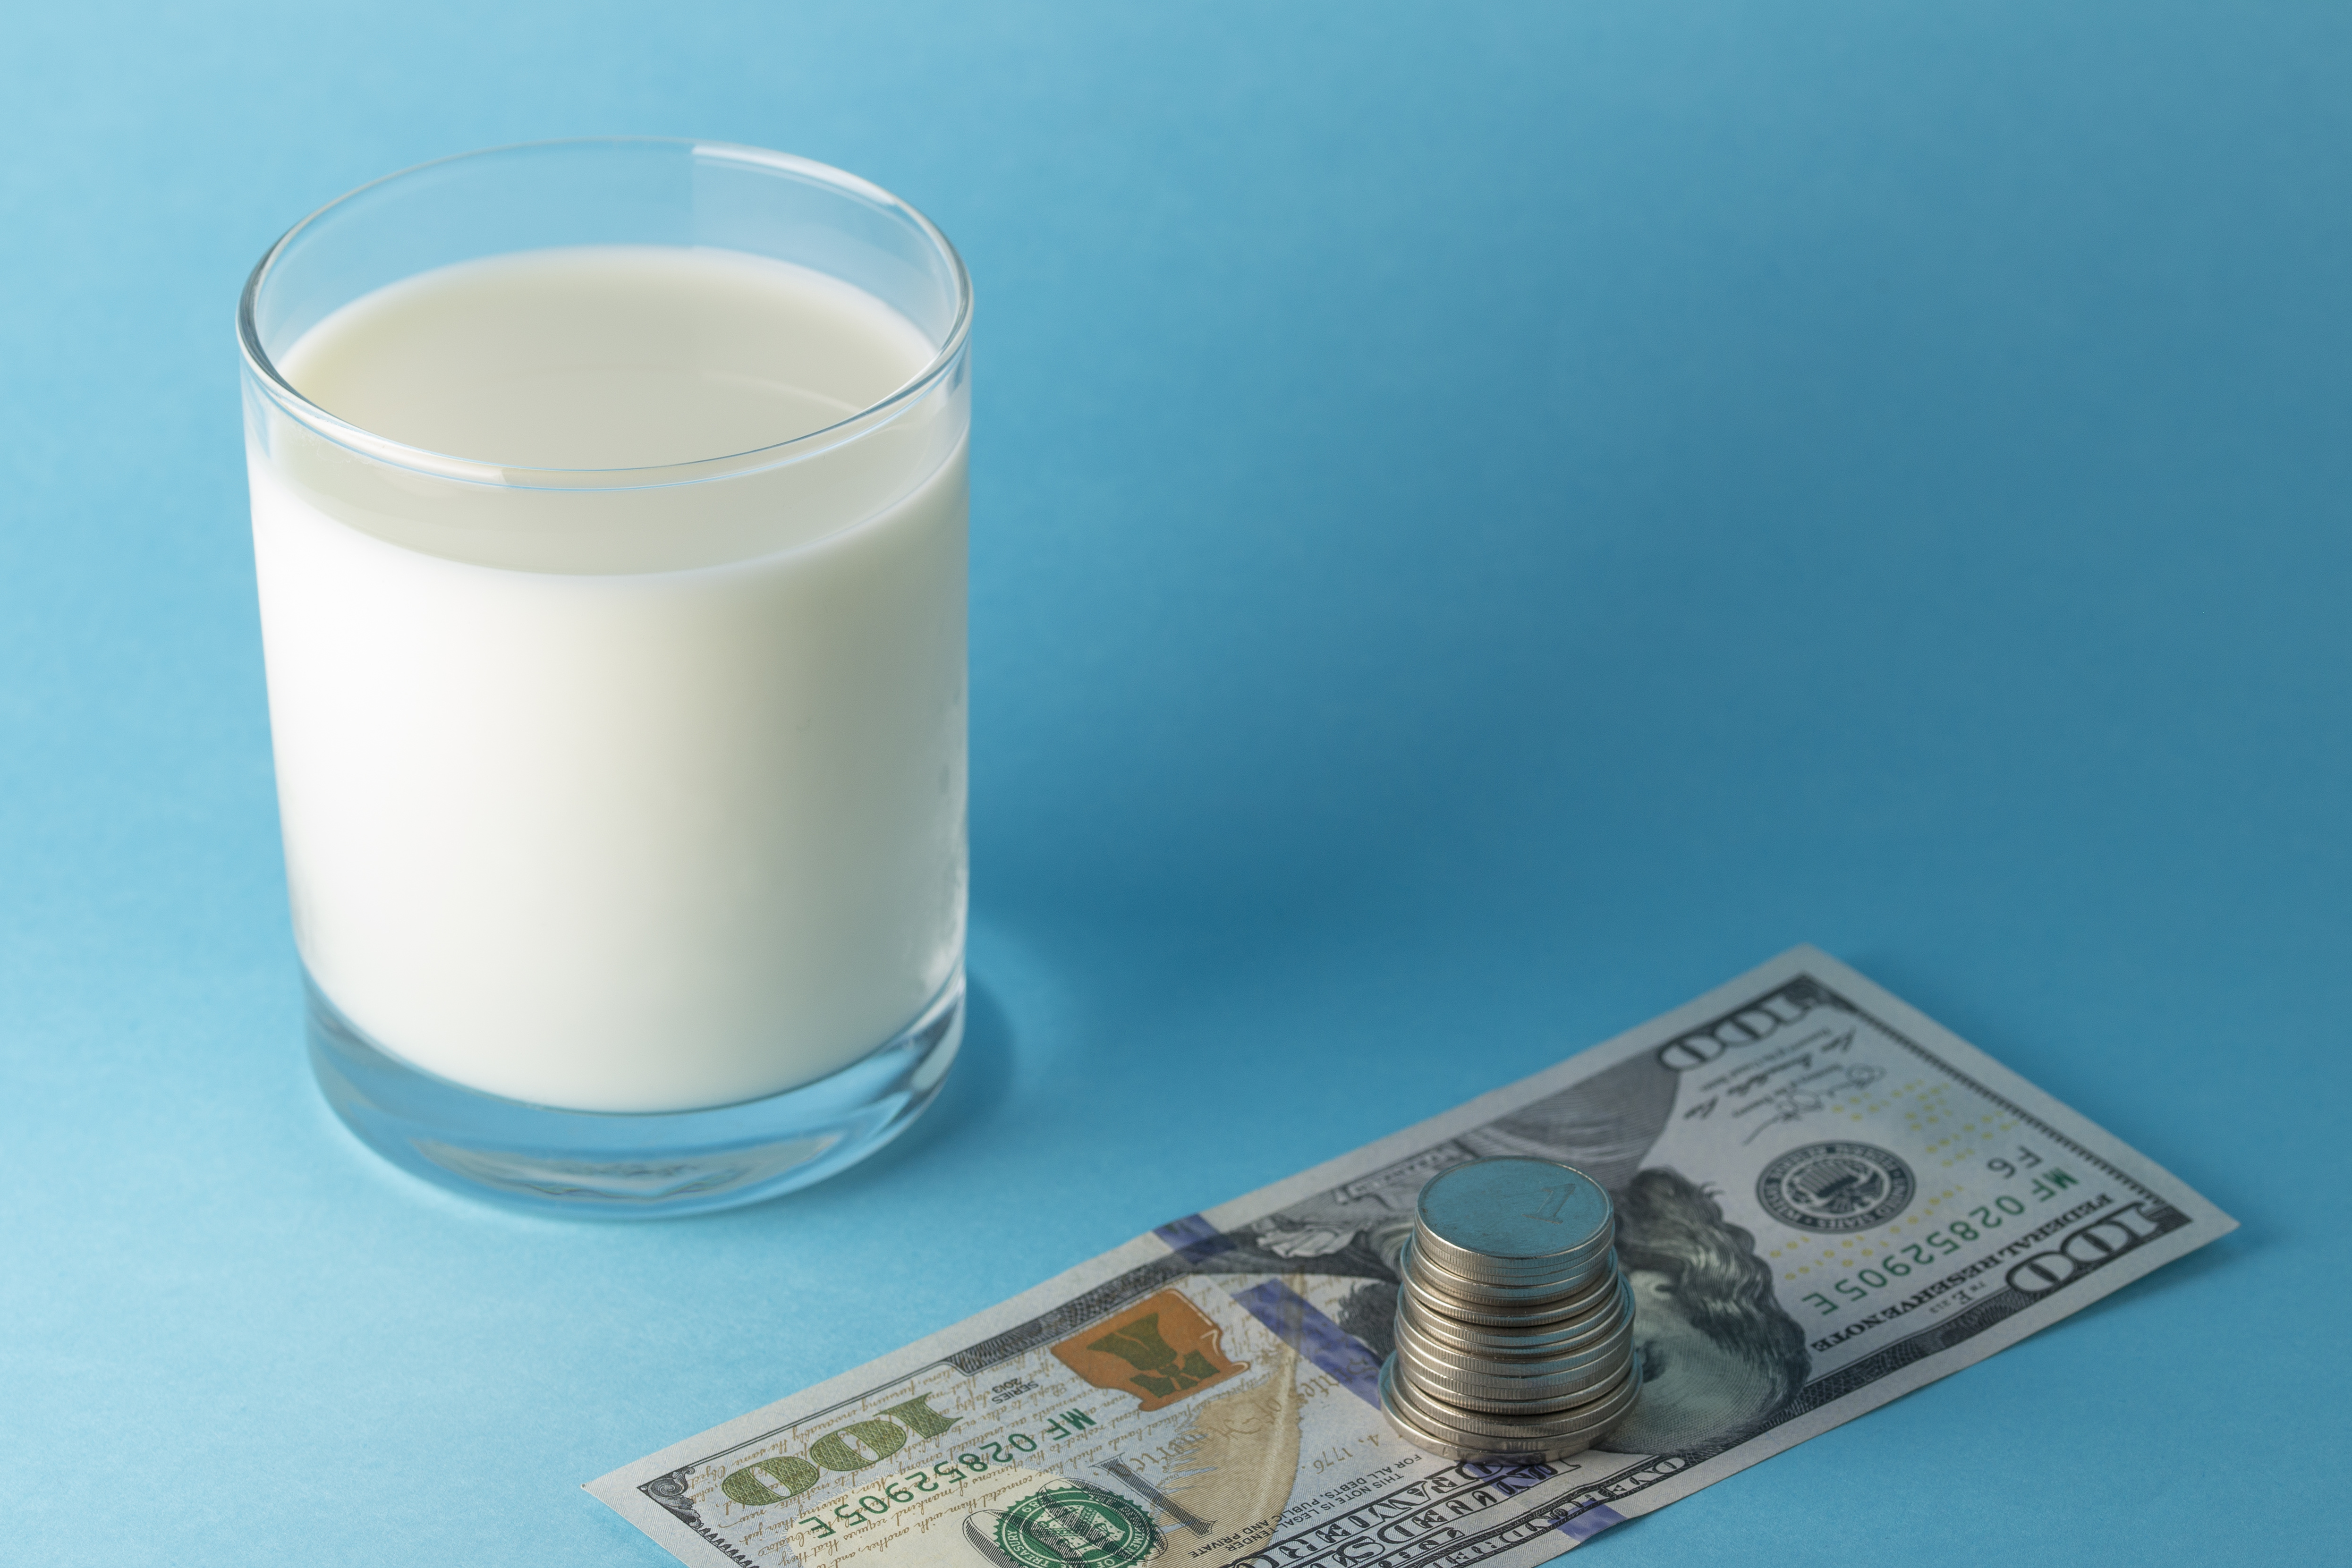 Glass of milk on a light blue surface, next to a U.S. $100 pill with a stack of coins set atop it.